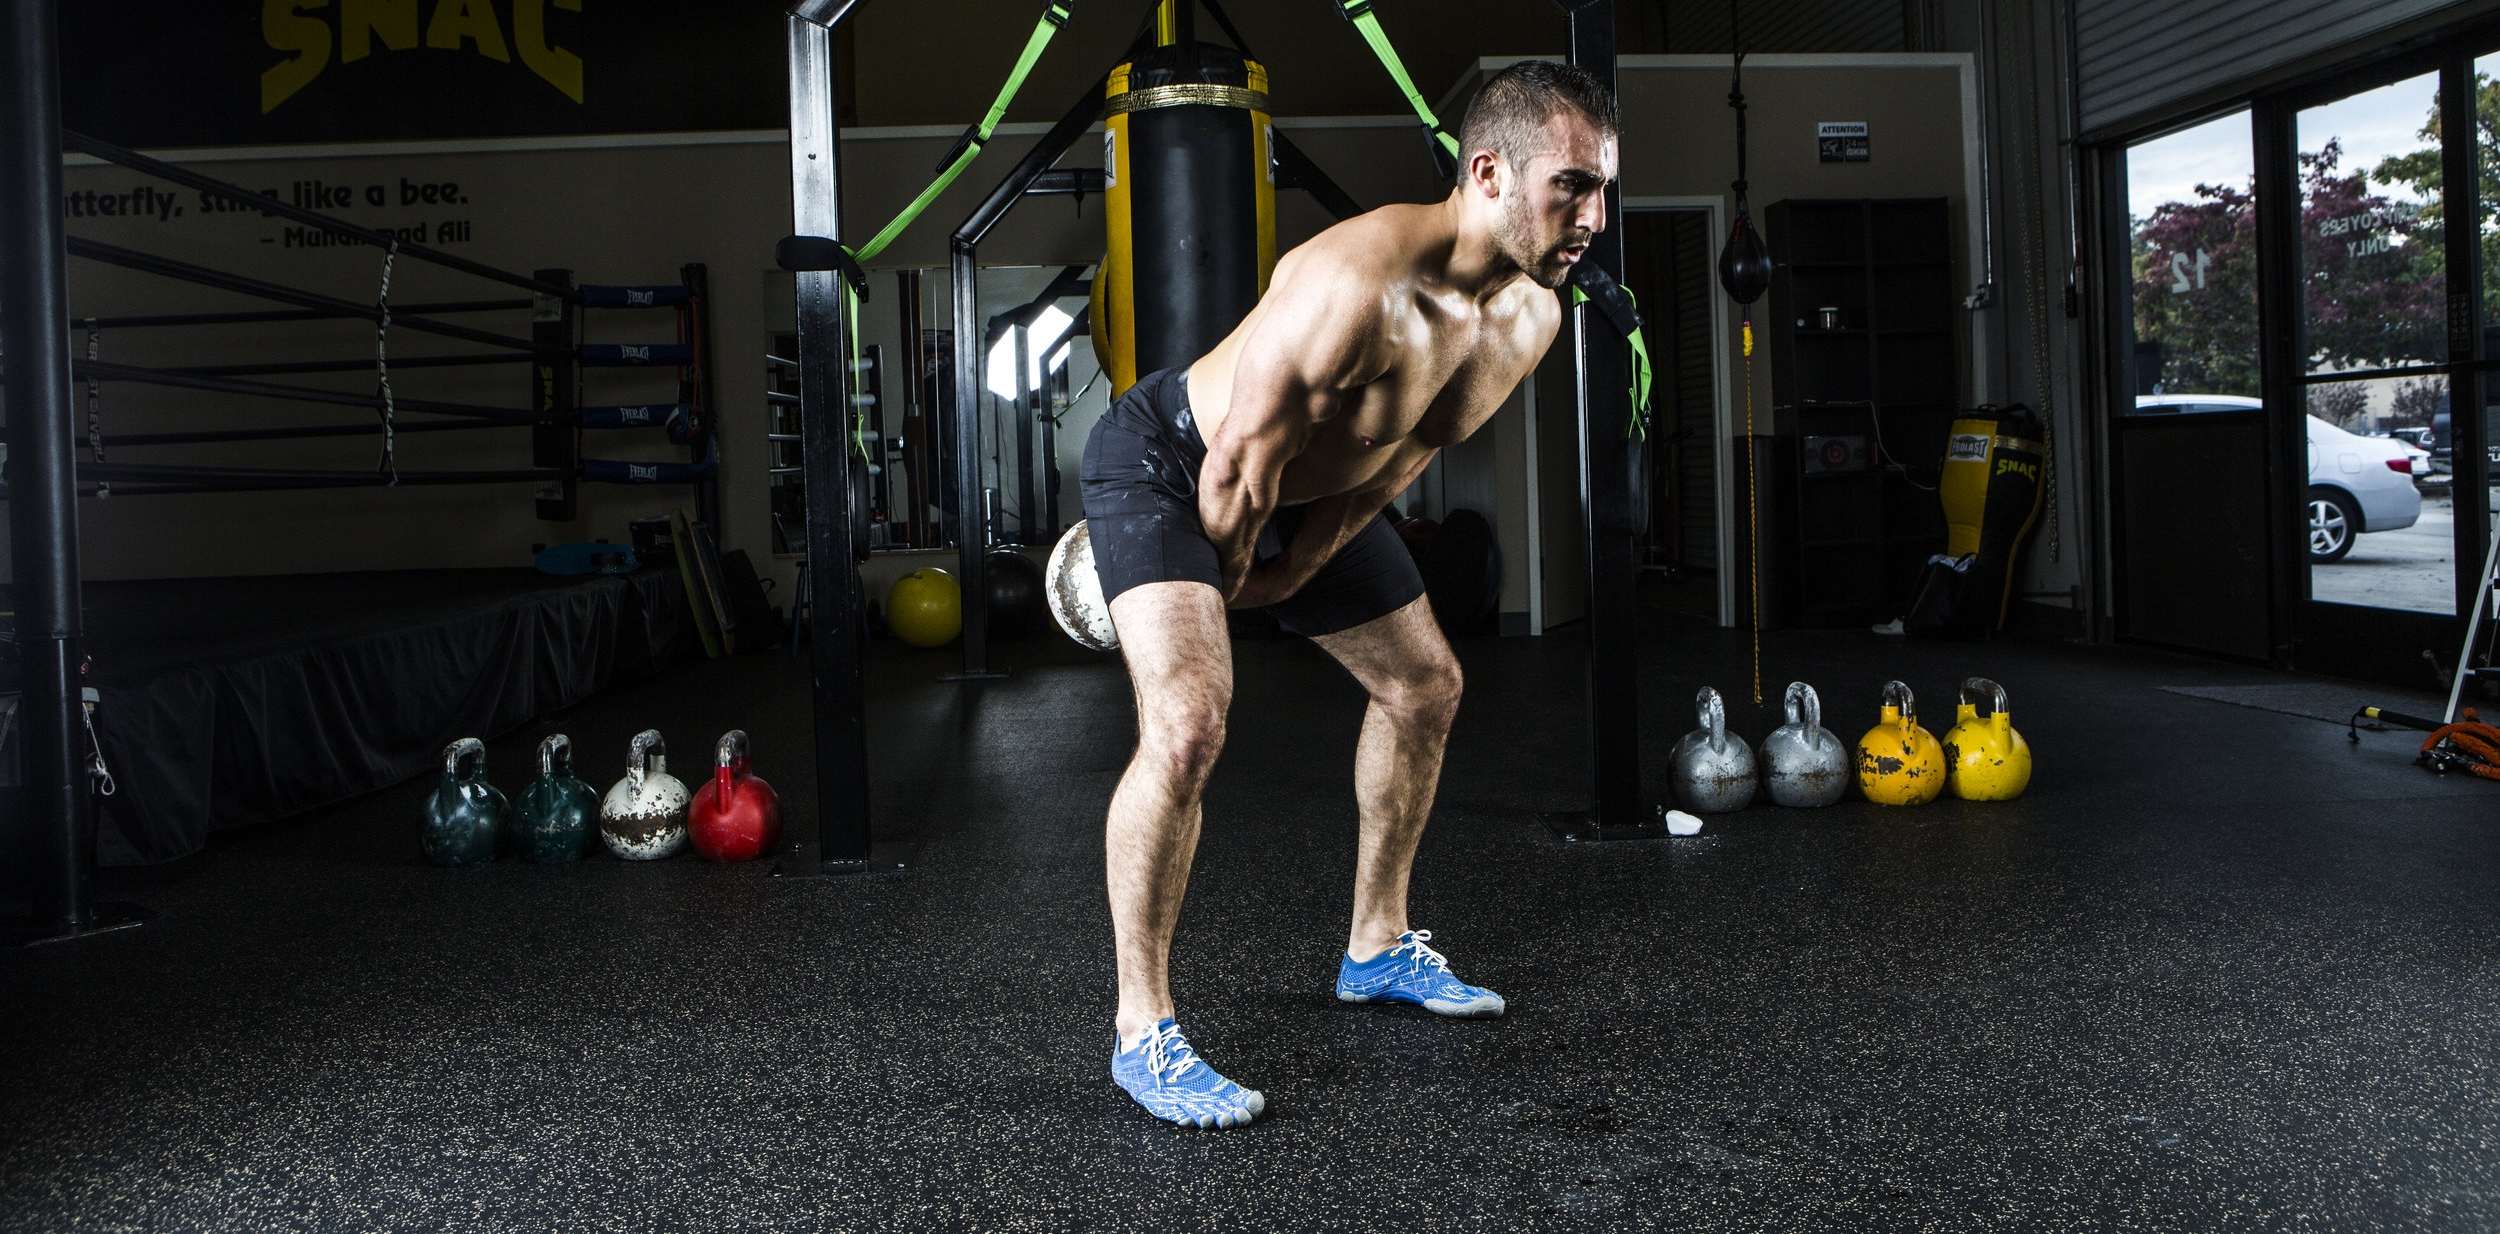 THE RIGHT WAY TO SWING A KETTLEBELL - 3 Essentials to Swinging for POWER vs. ENDURANCE